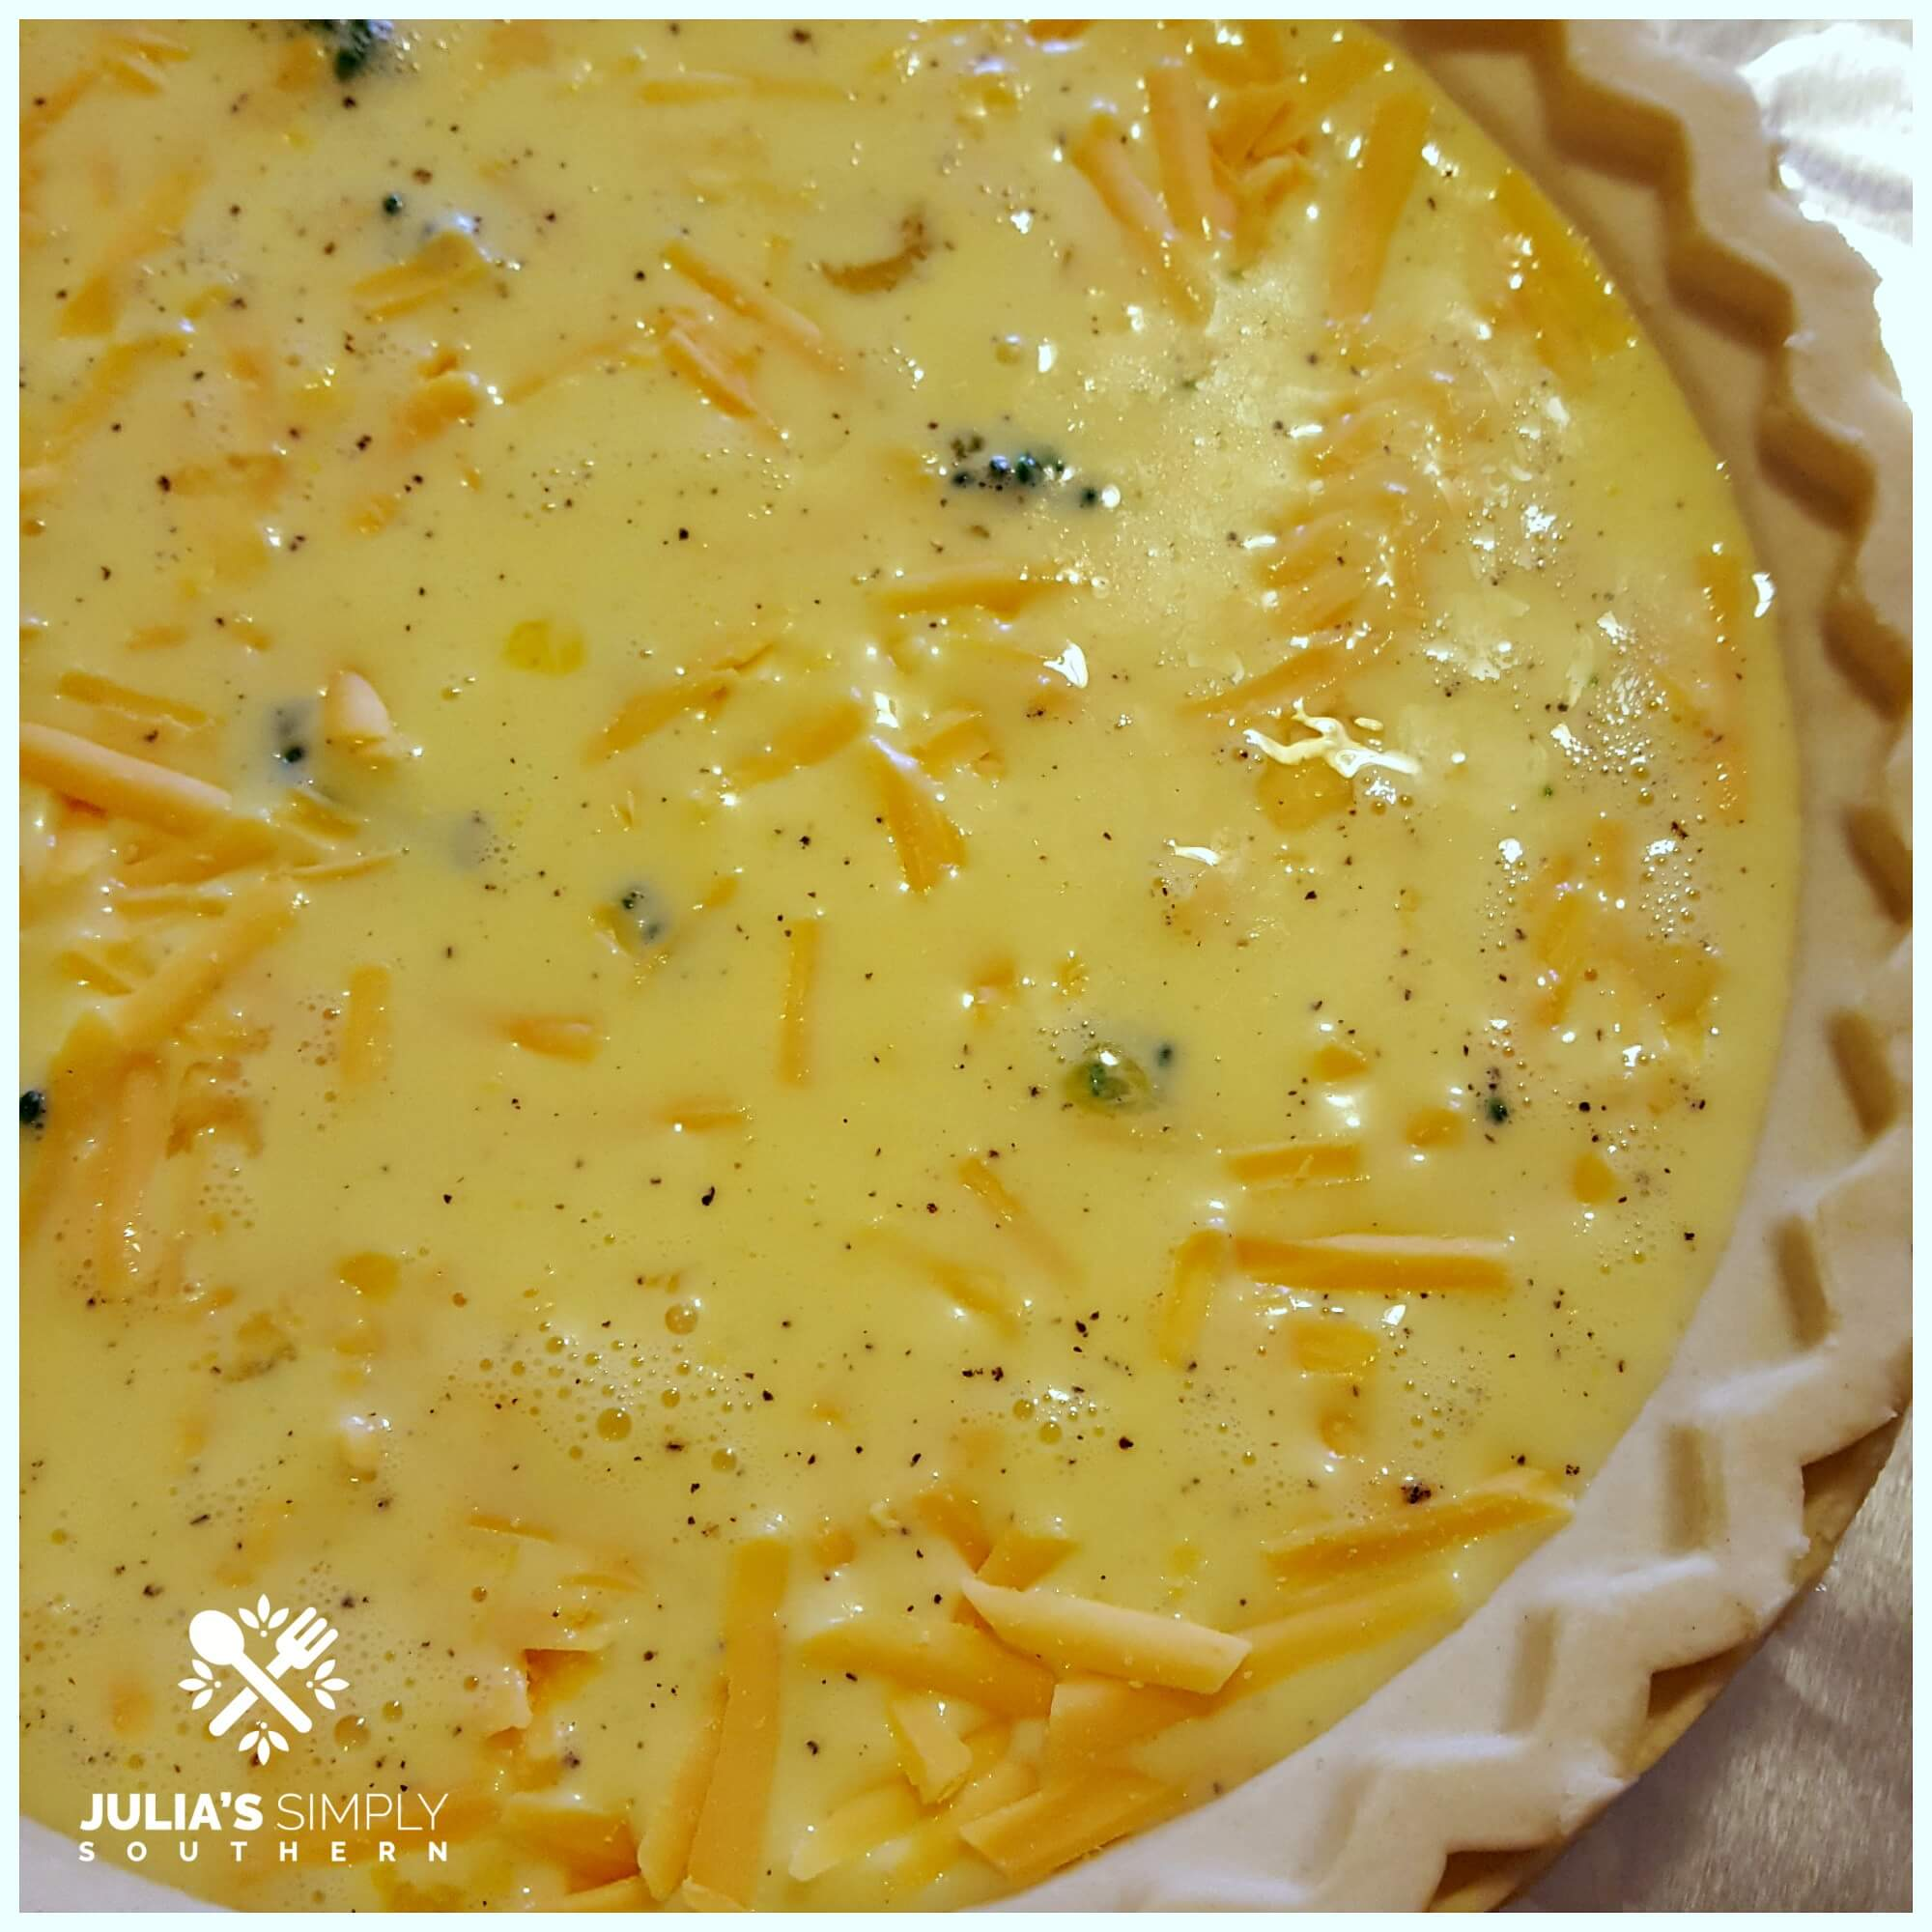 How to make a healthy broccoli and cheddar cheese quiche